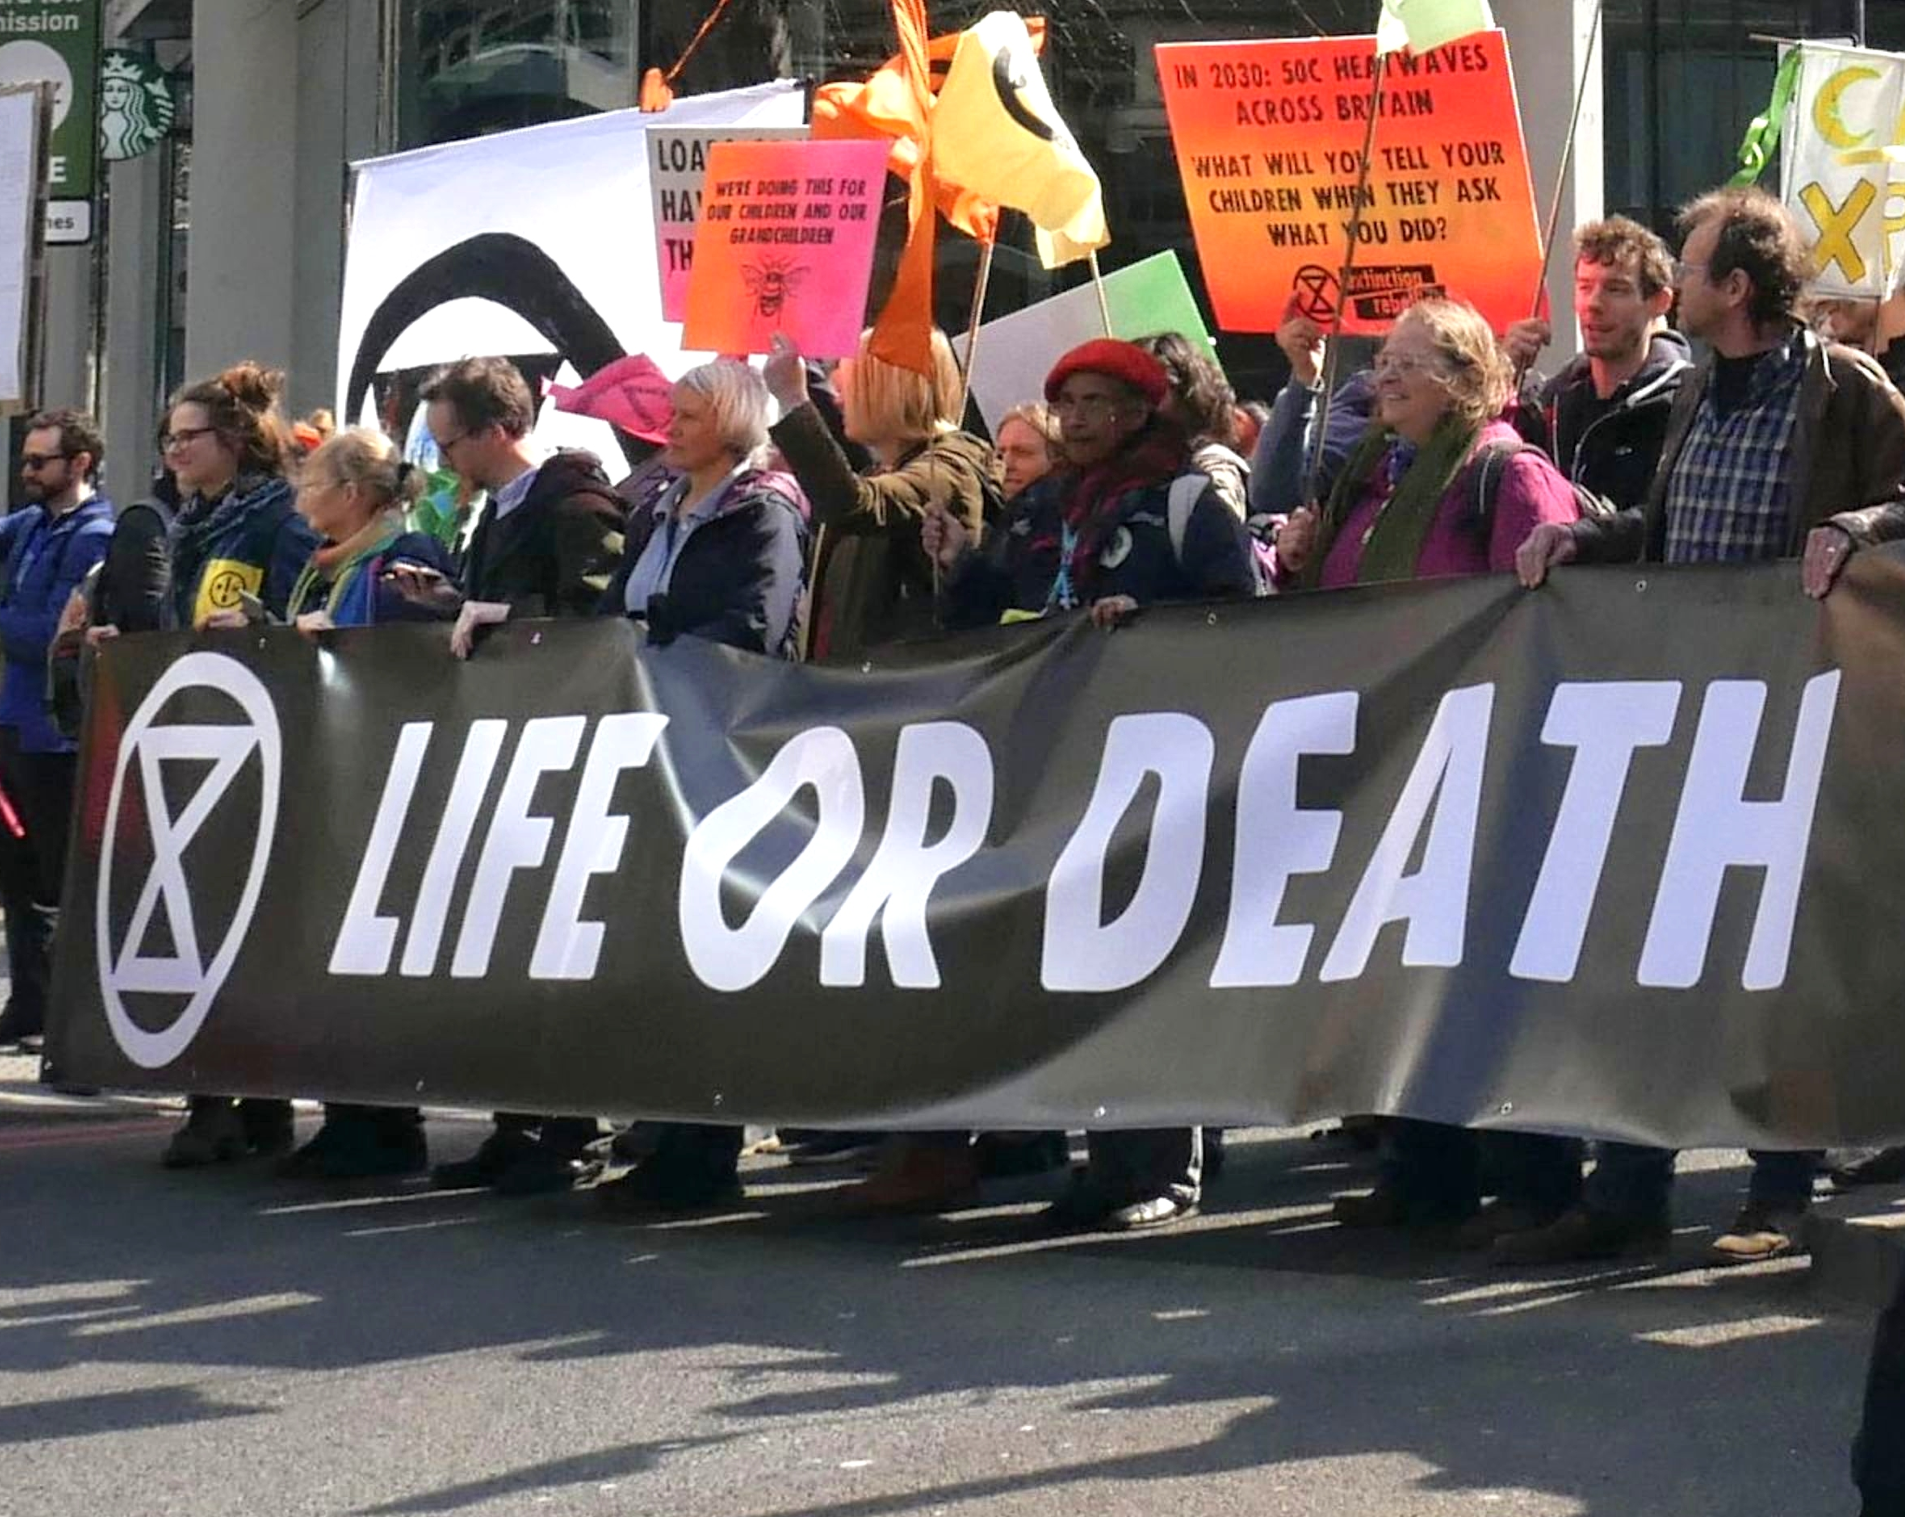 Extinction Rebellion in London (15 April 2019)